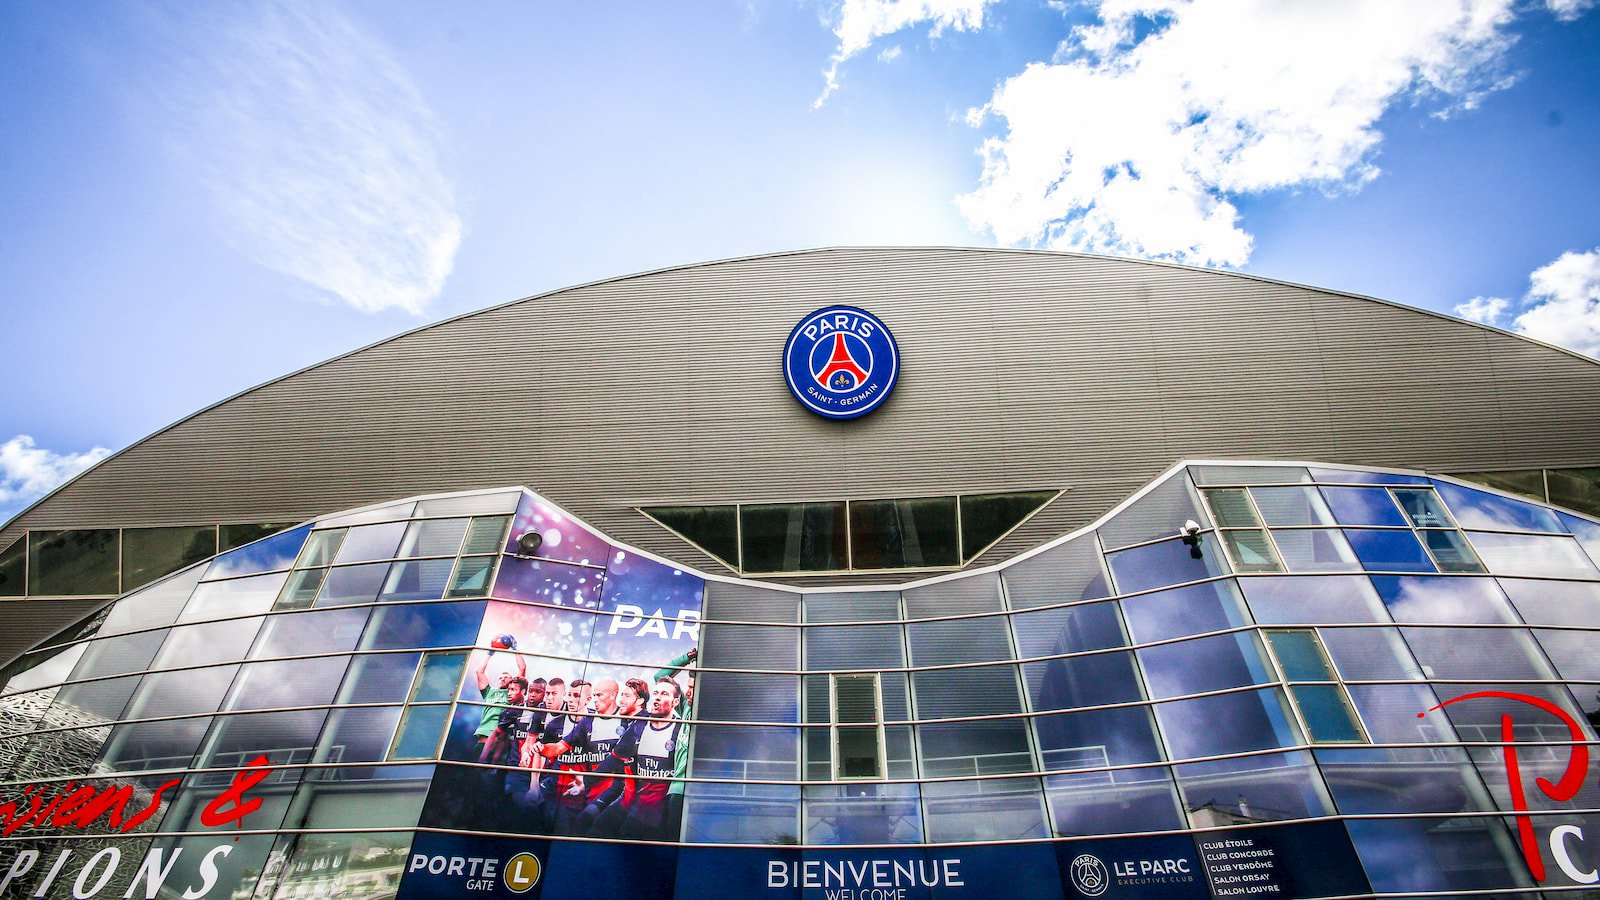 Parc des Princes Football stadium of Paris Saint-Germain FC.jpg